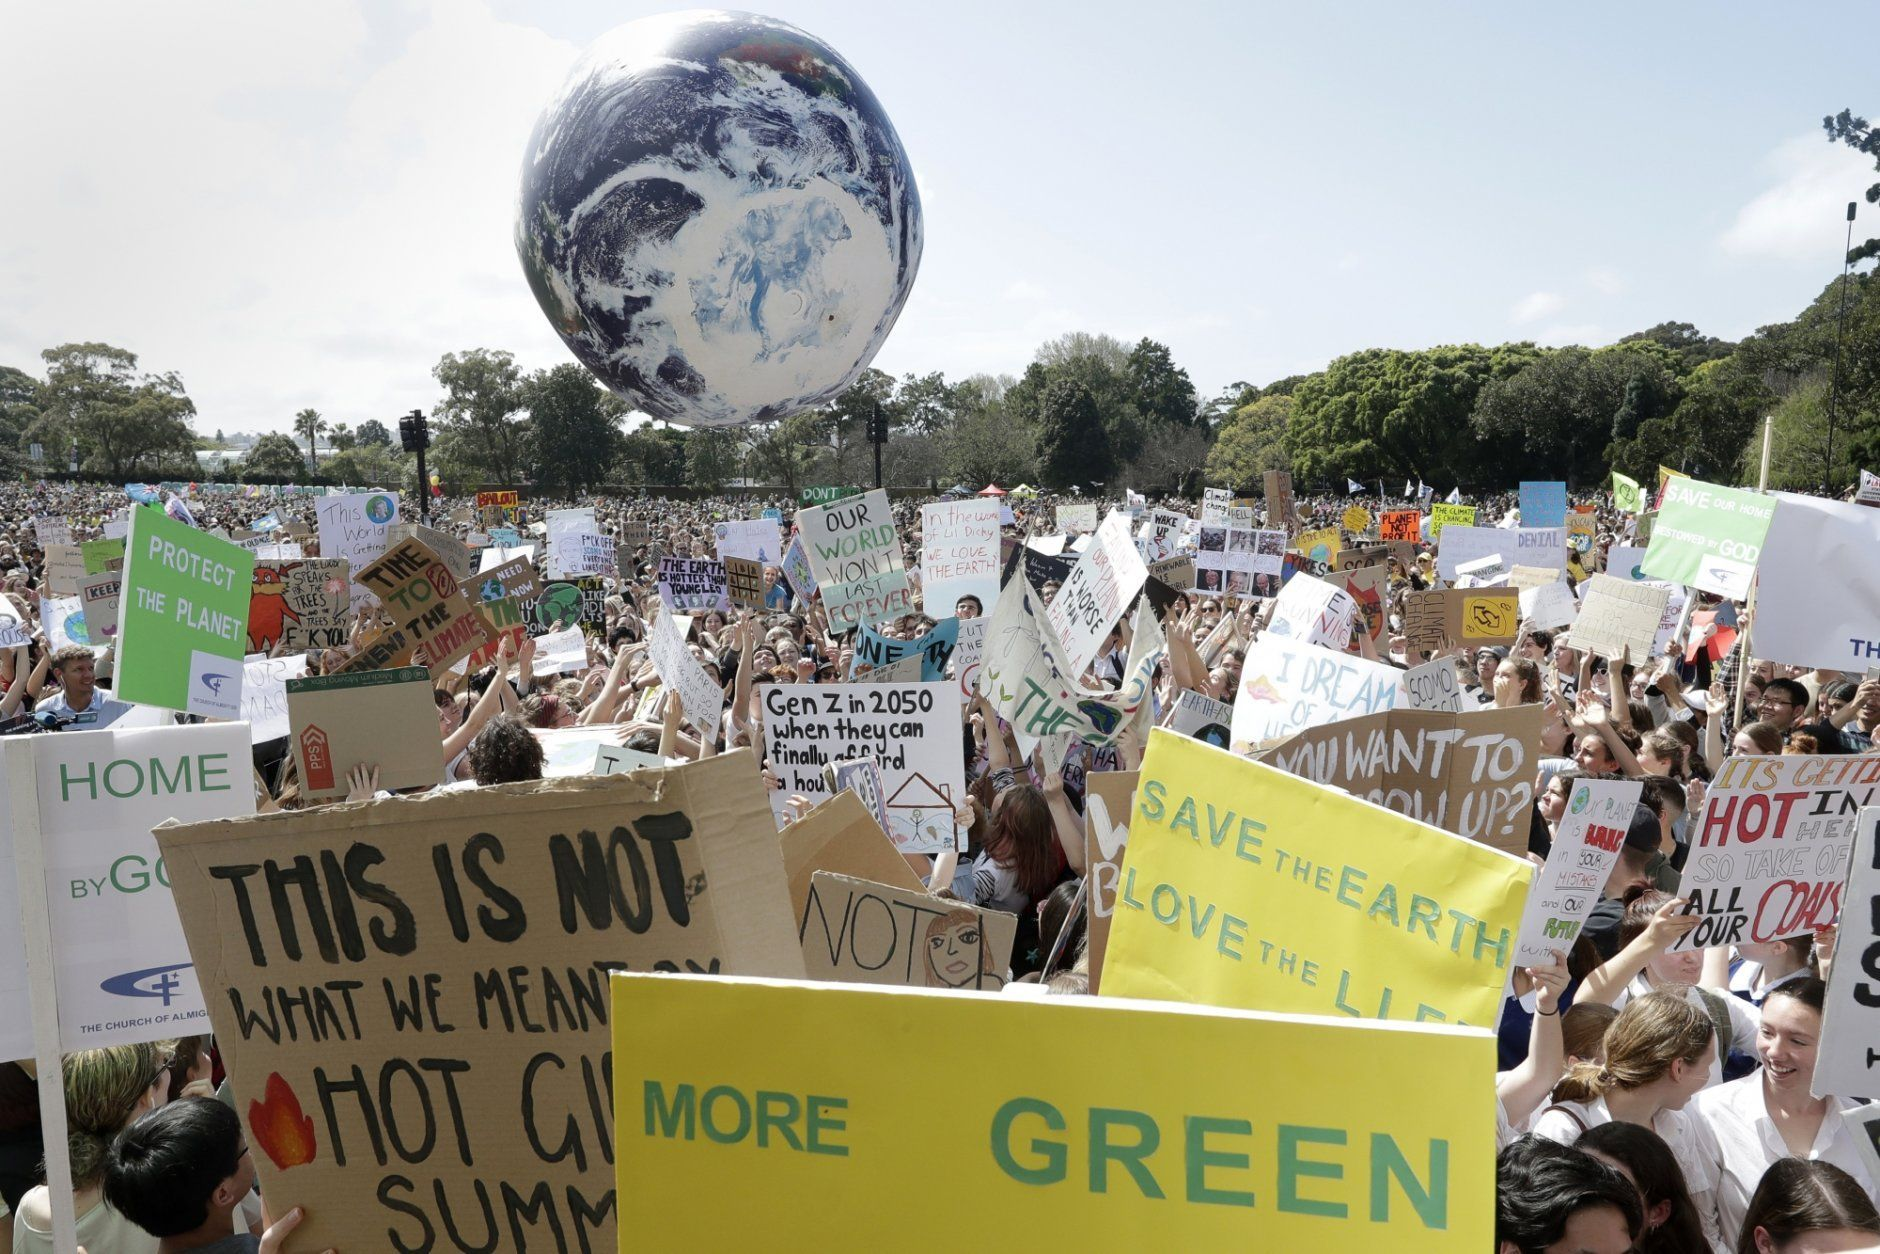 """A large inflatable globe is bounced through the crowd as thousands of protestors, many of them school students, gather in Sydney, Friday, Sept. 20, 2019, calling for action to guard against climate change. Australia's acting Prime Minister Michael McCormack has described ongoing climate rallies as """"just a disruption"""" that should have been held on a weekend to avoid inconveniencing communities. (AP Photo/Rick Rycroft)"""